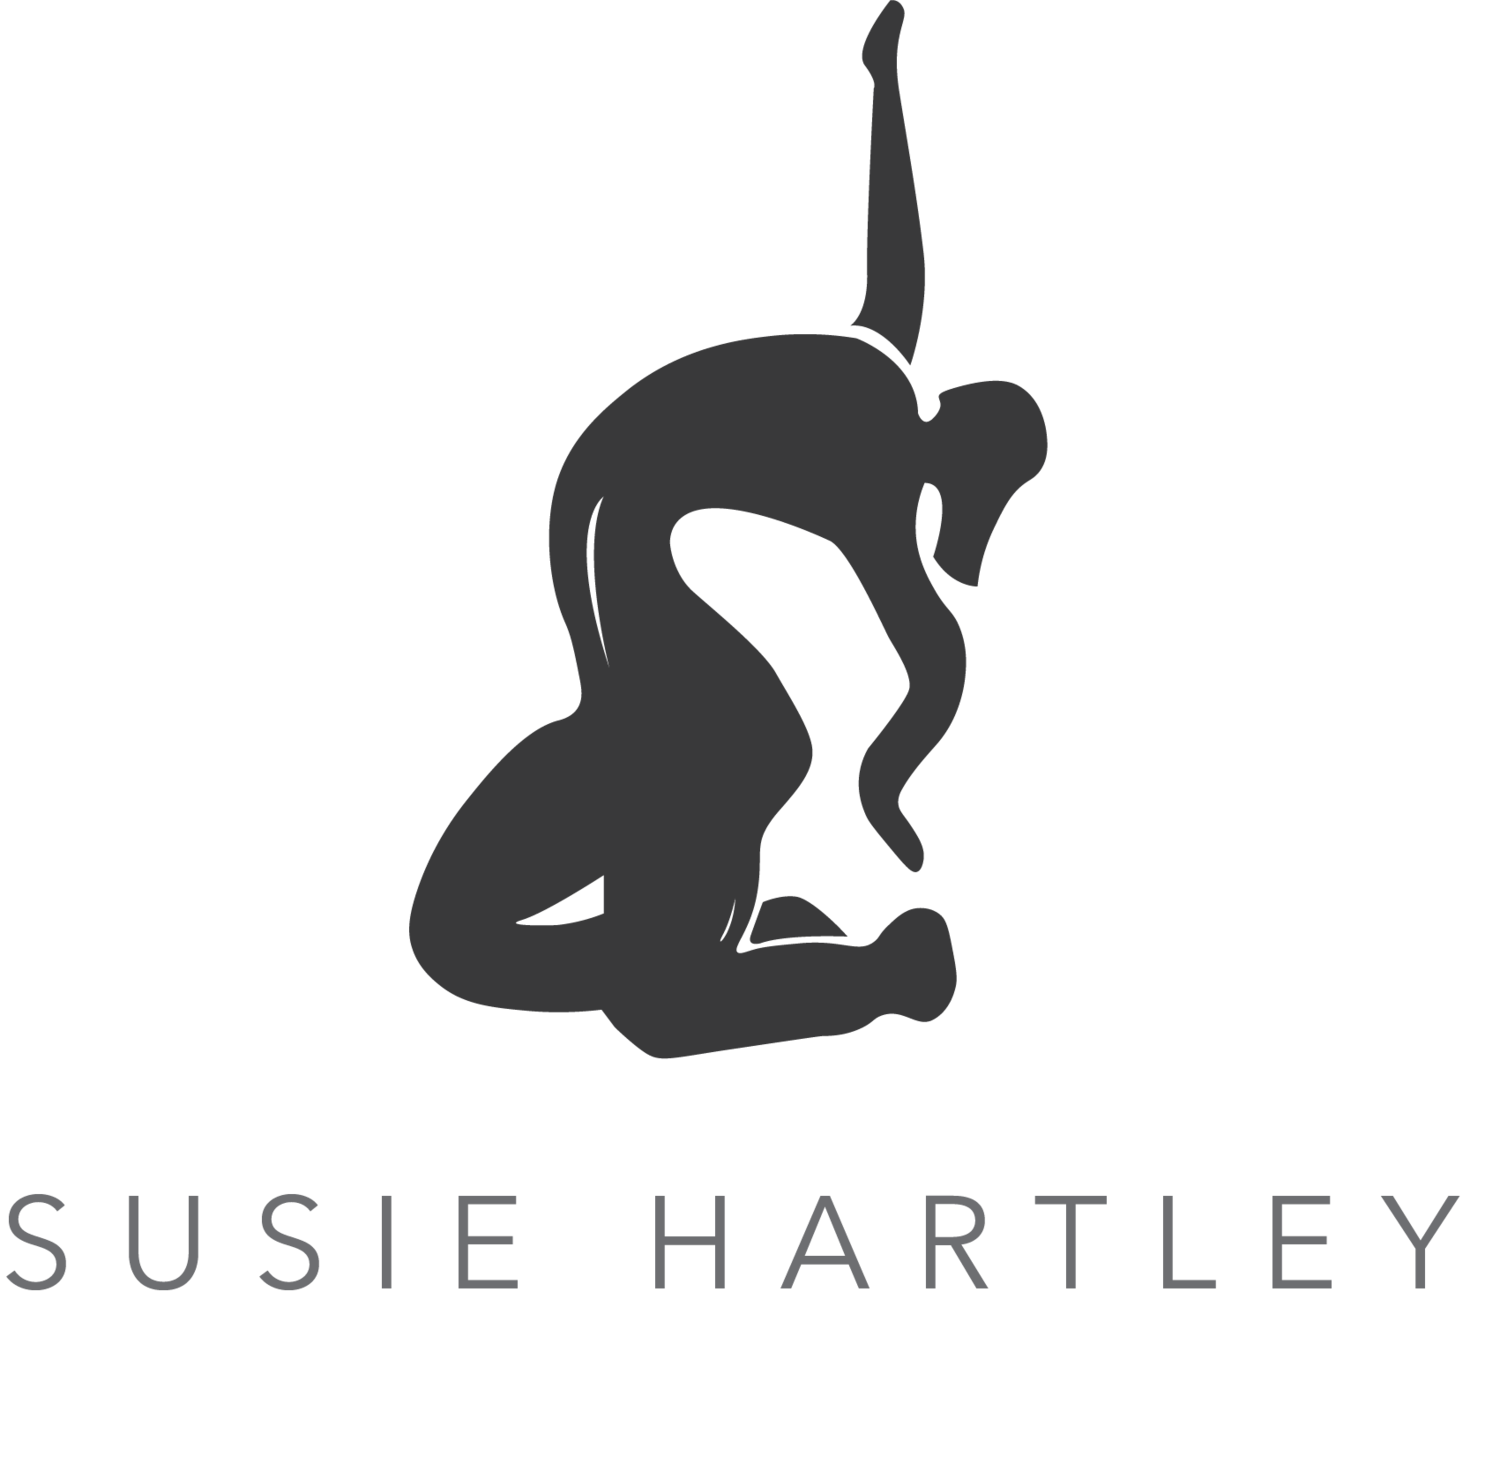 Susie Hartley Sculpture